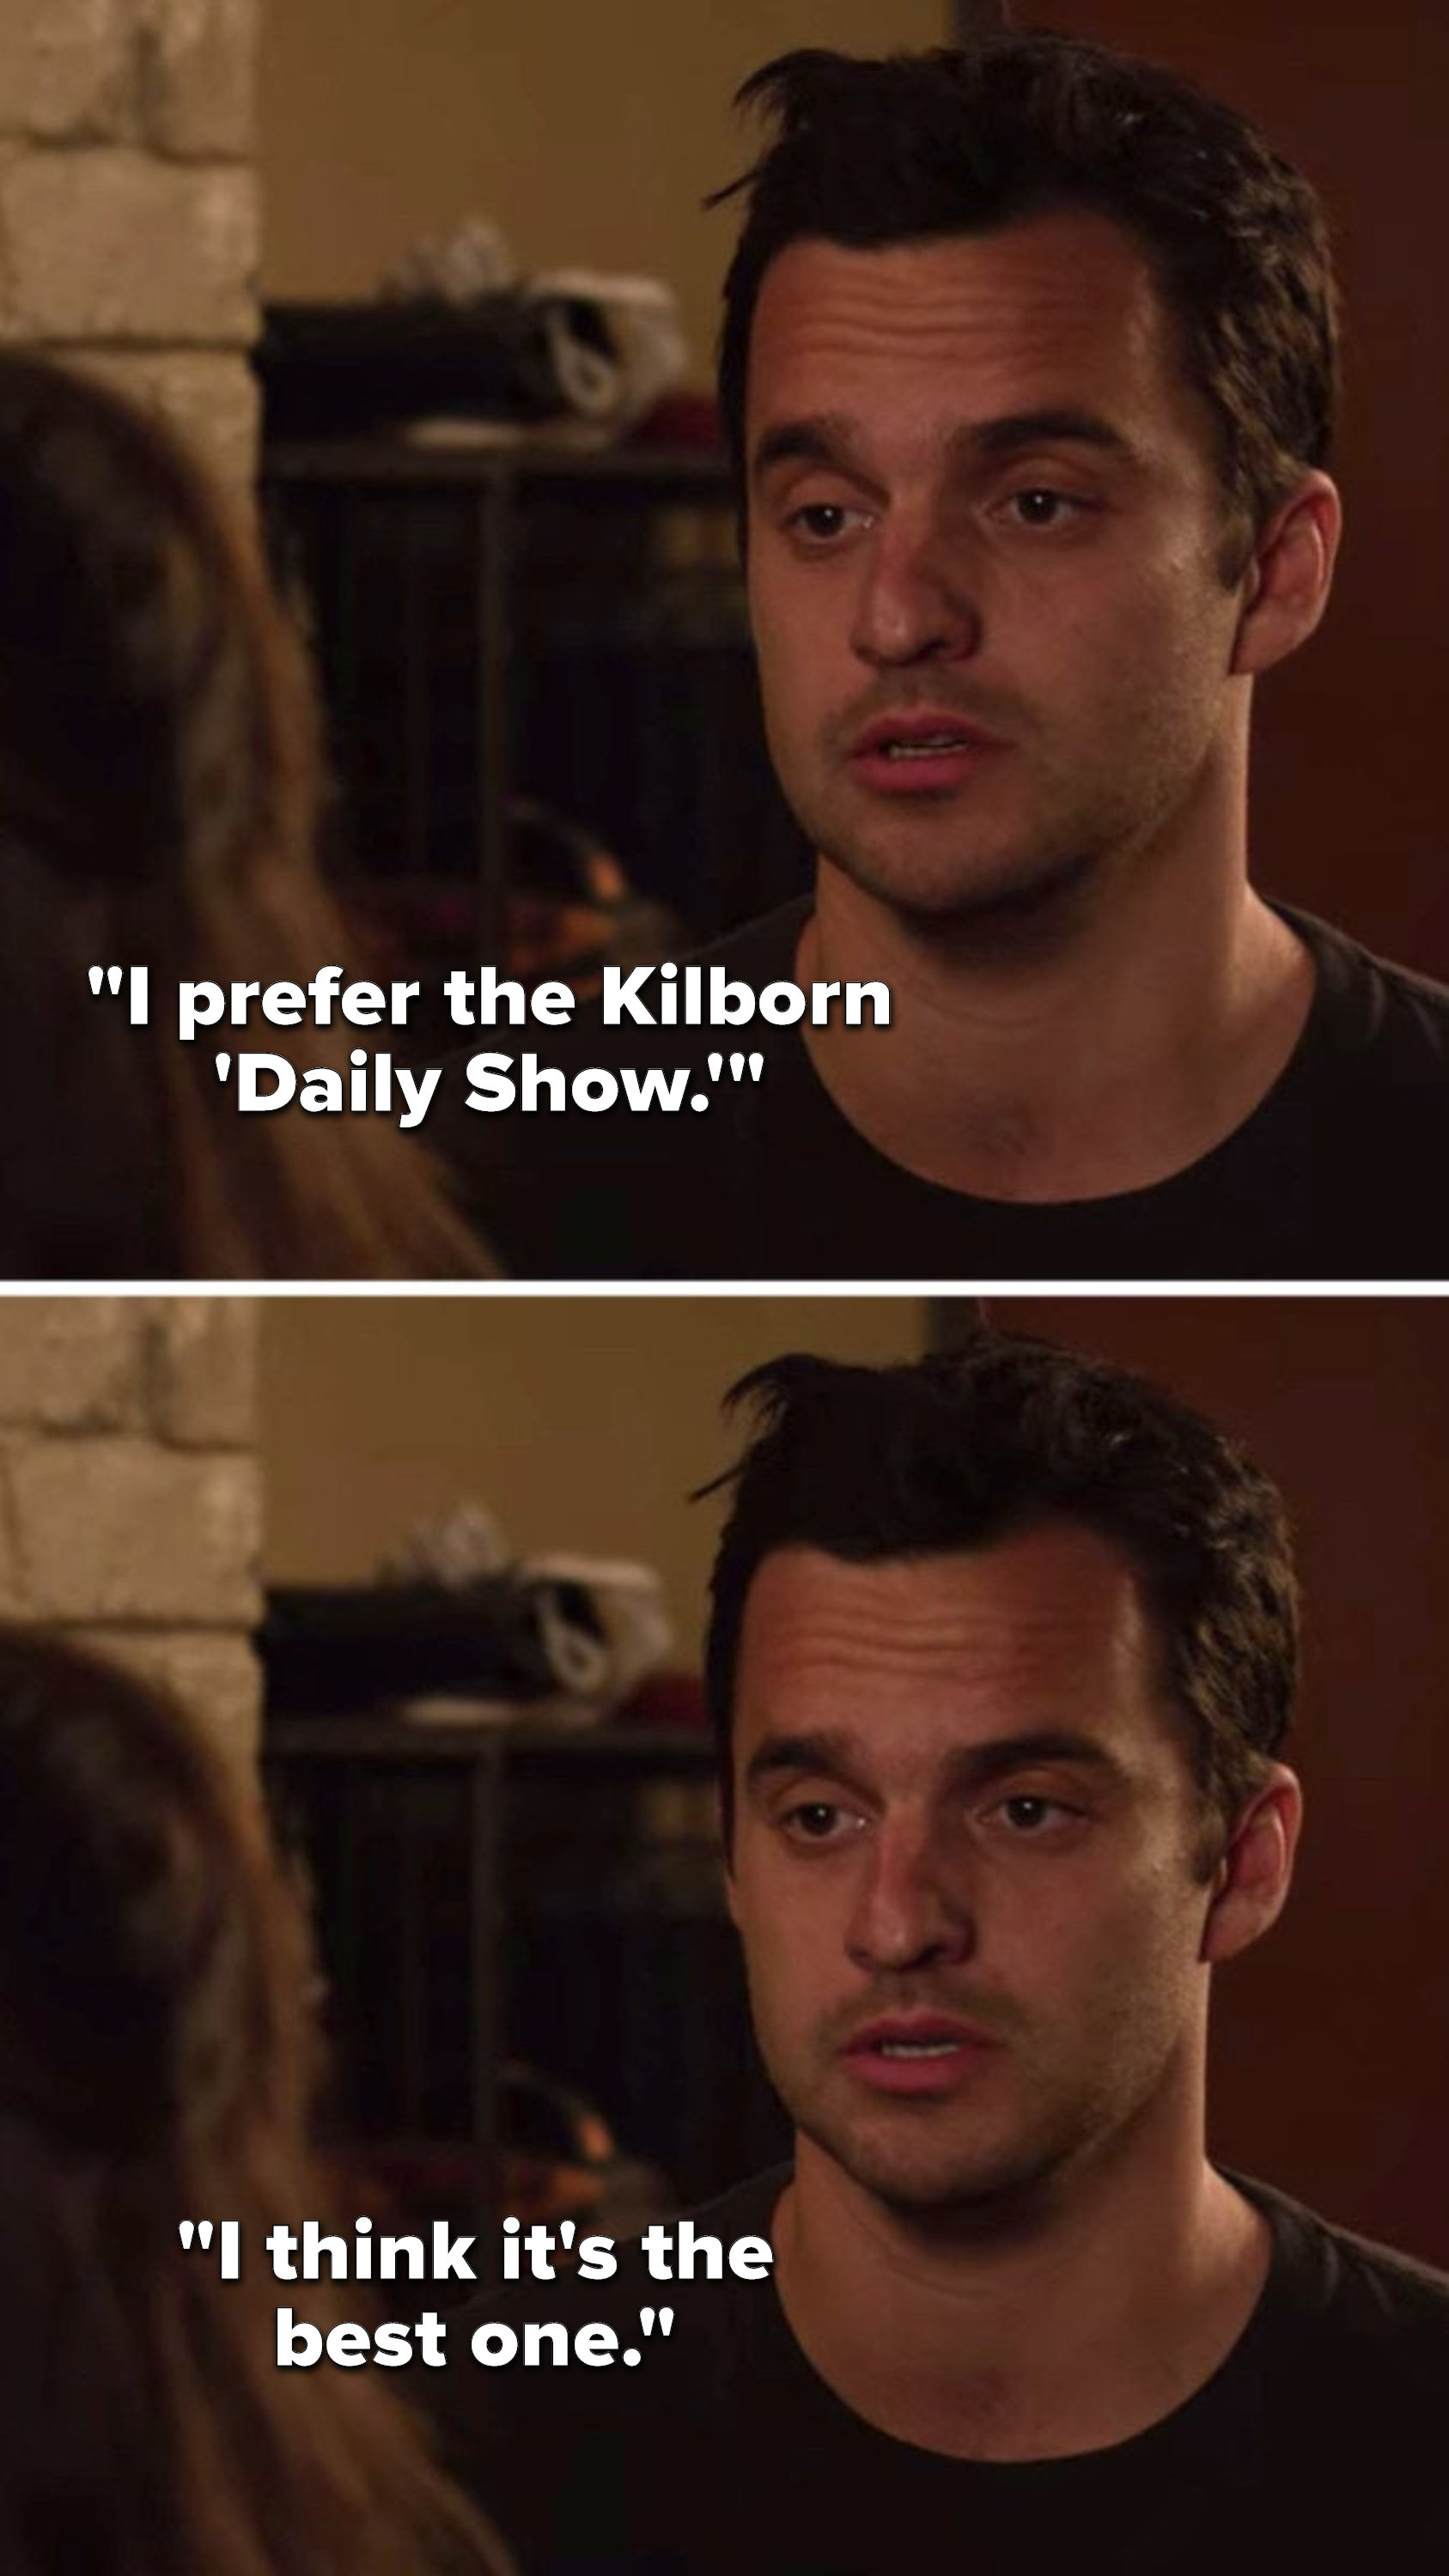 Nick says, I prefer the Kilborn Daily Show, I think it's the best one